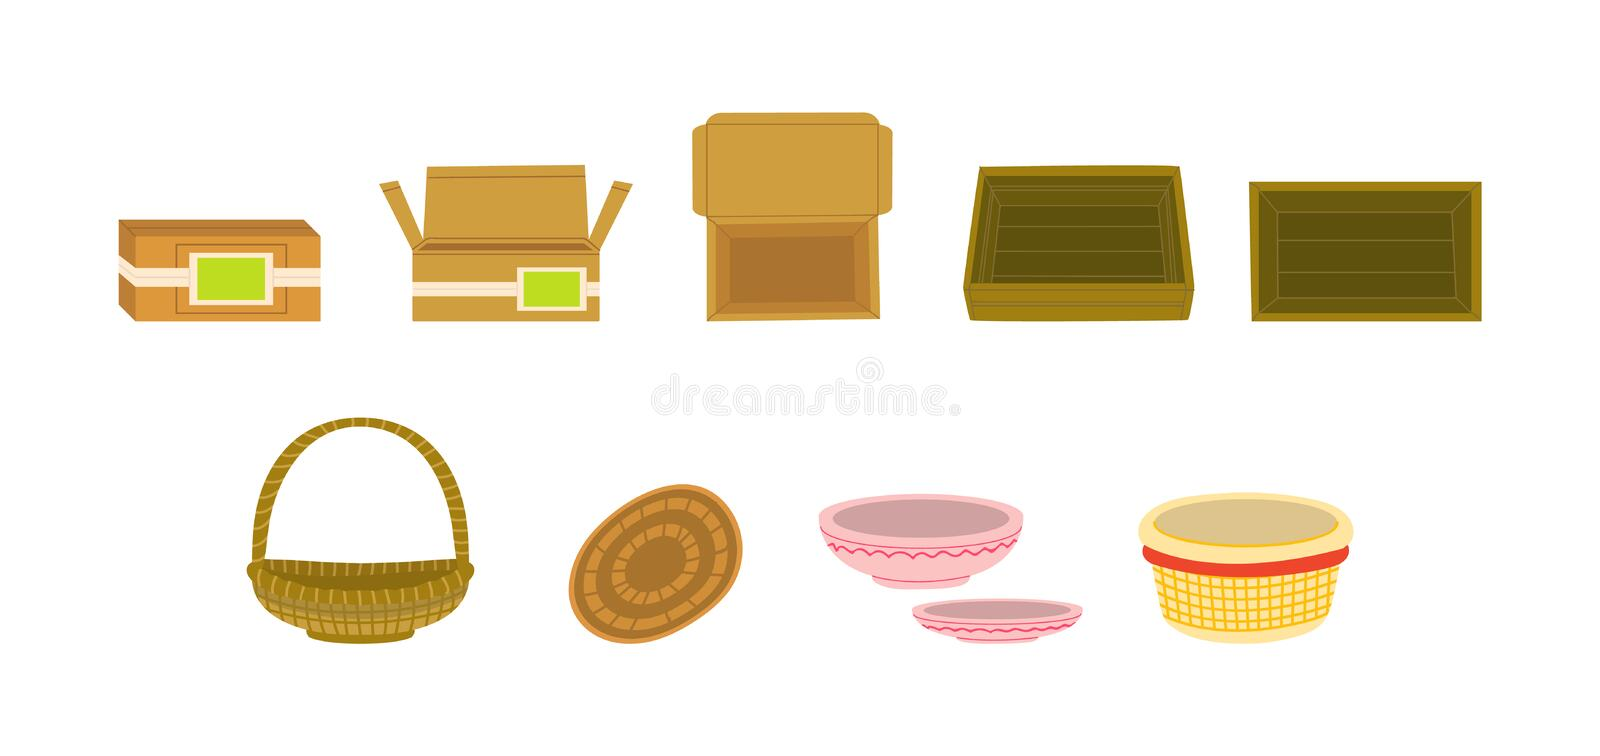 Goods packages flat vector illustration set. Wooden, cardboard vegetable boxes, trays. Fruits baskets, containers, crates for delivery, shipping. Storage stock illustration